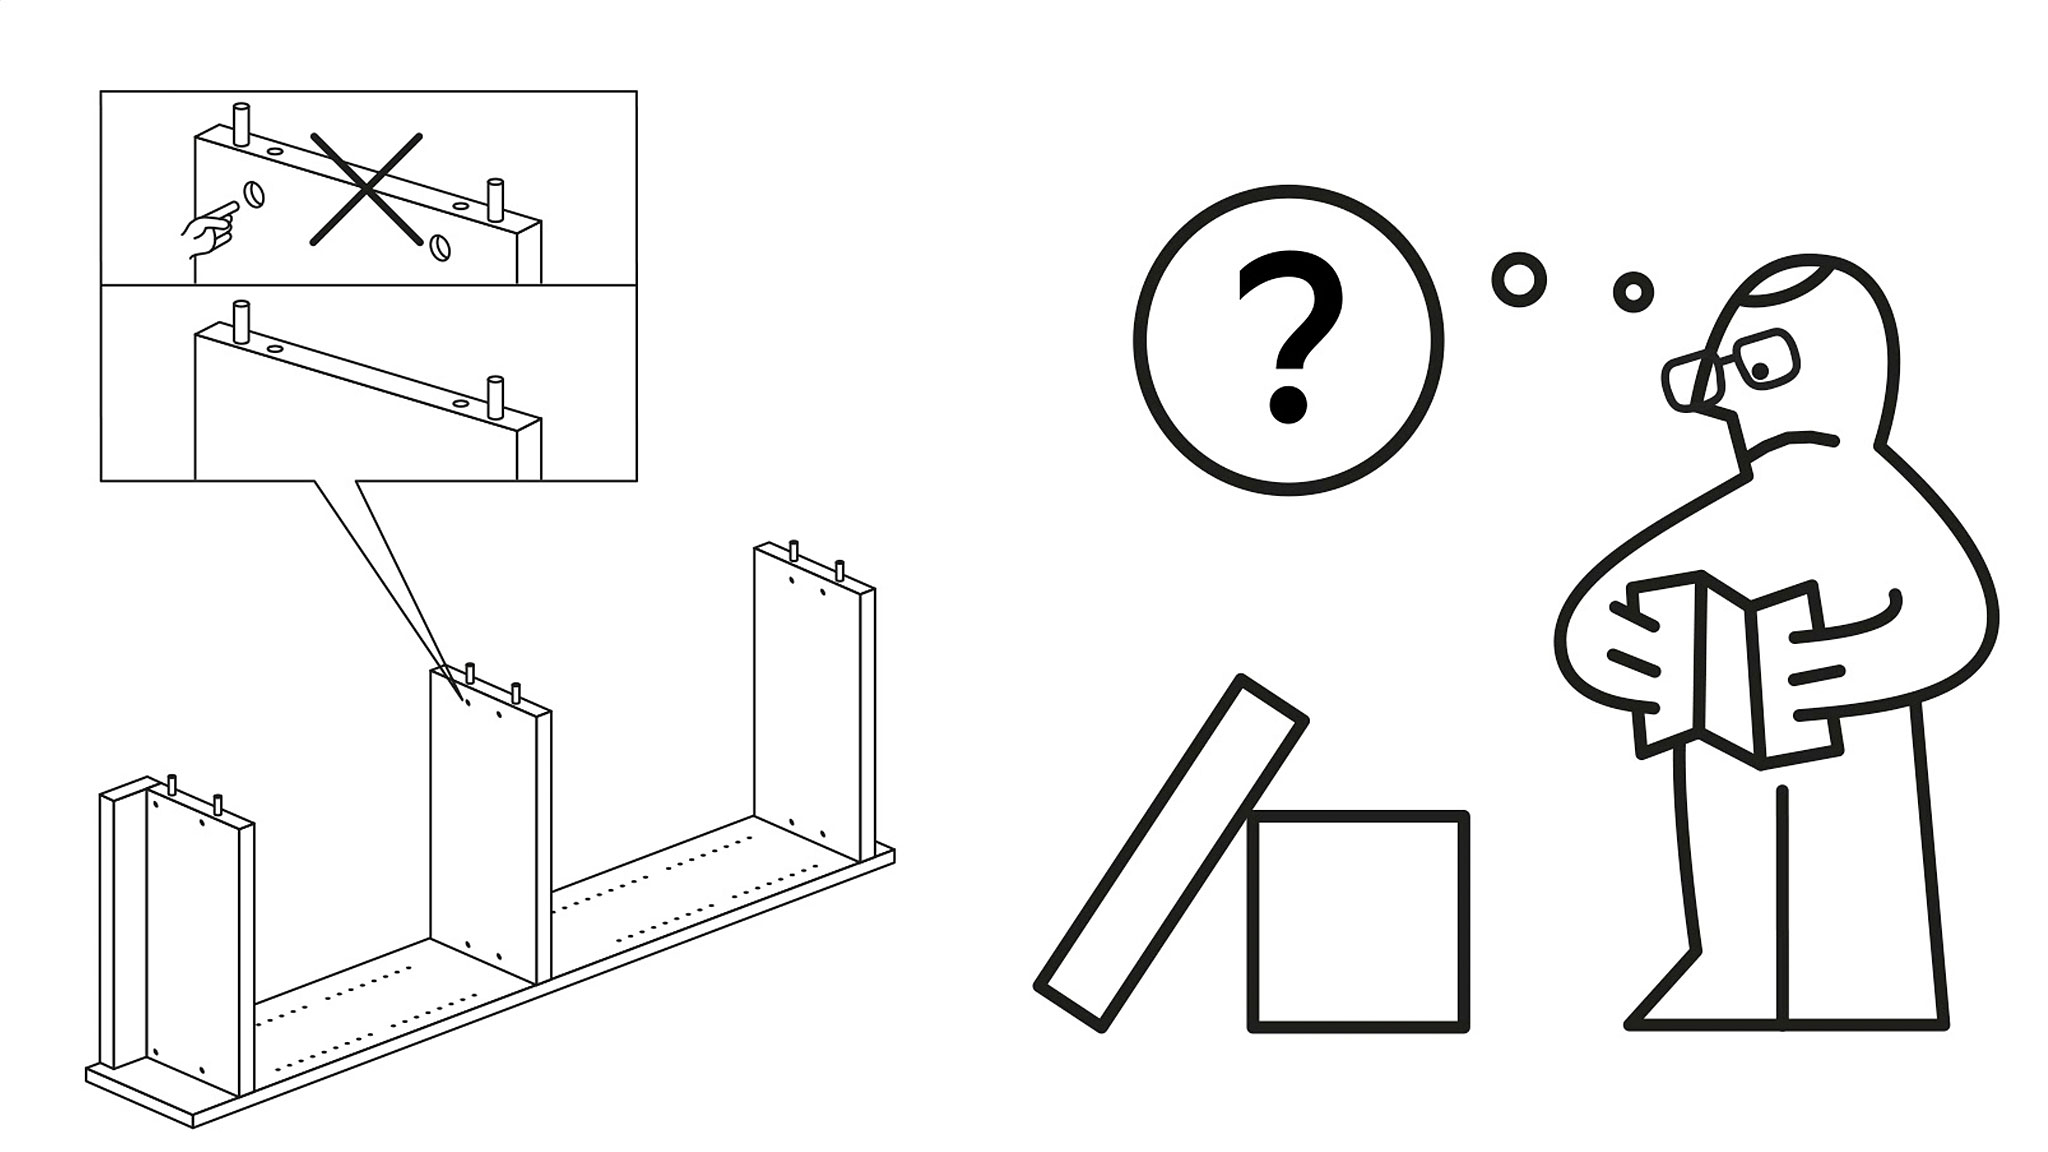 An instruction manual for Ikea's business empire